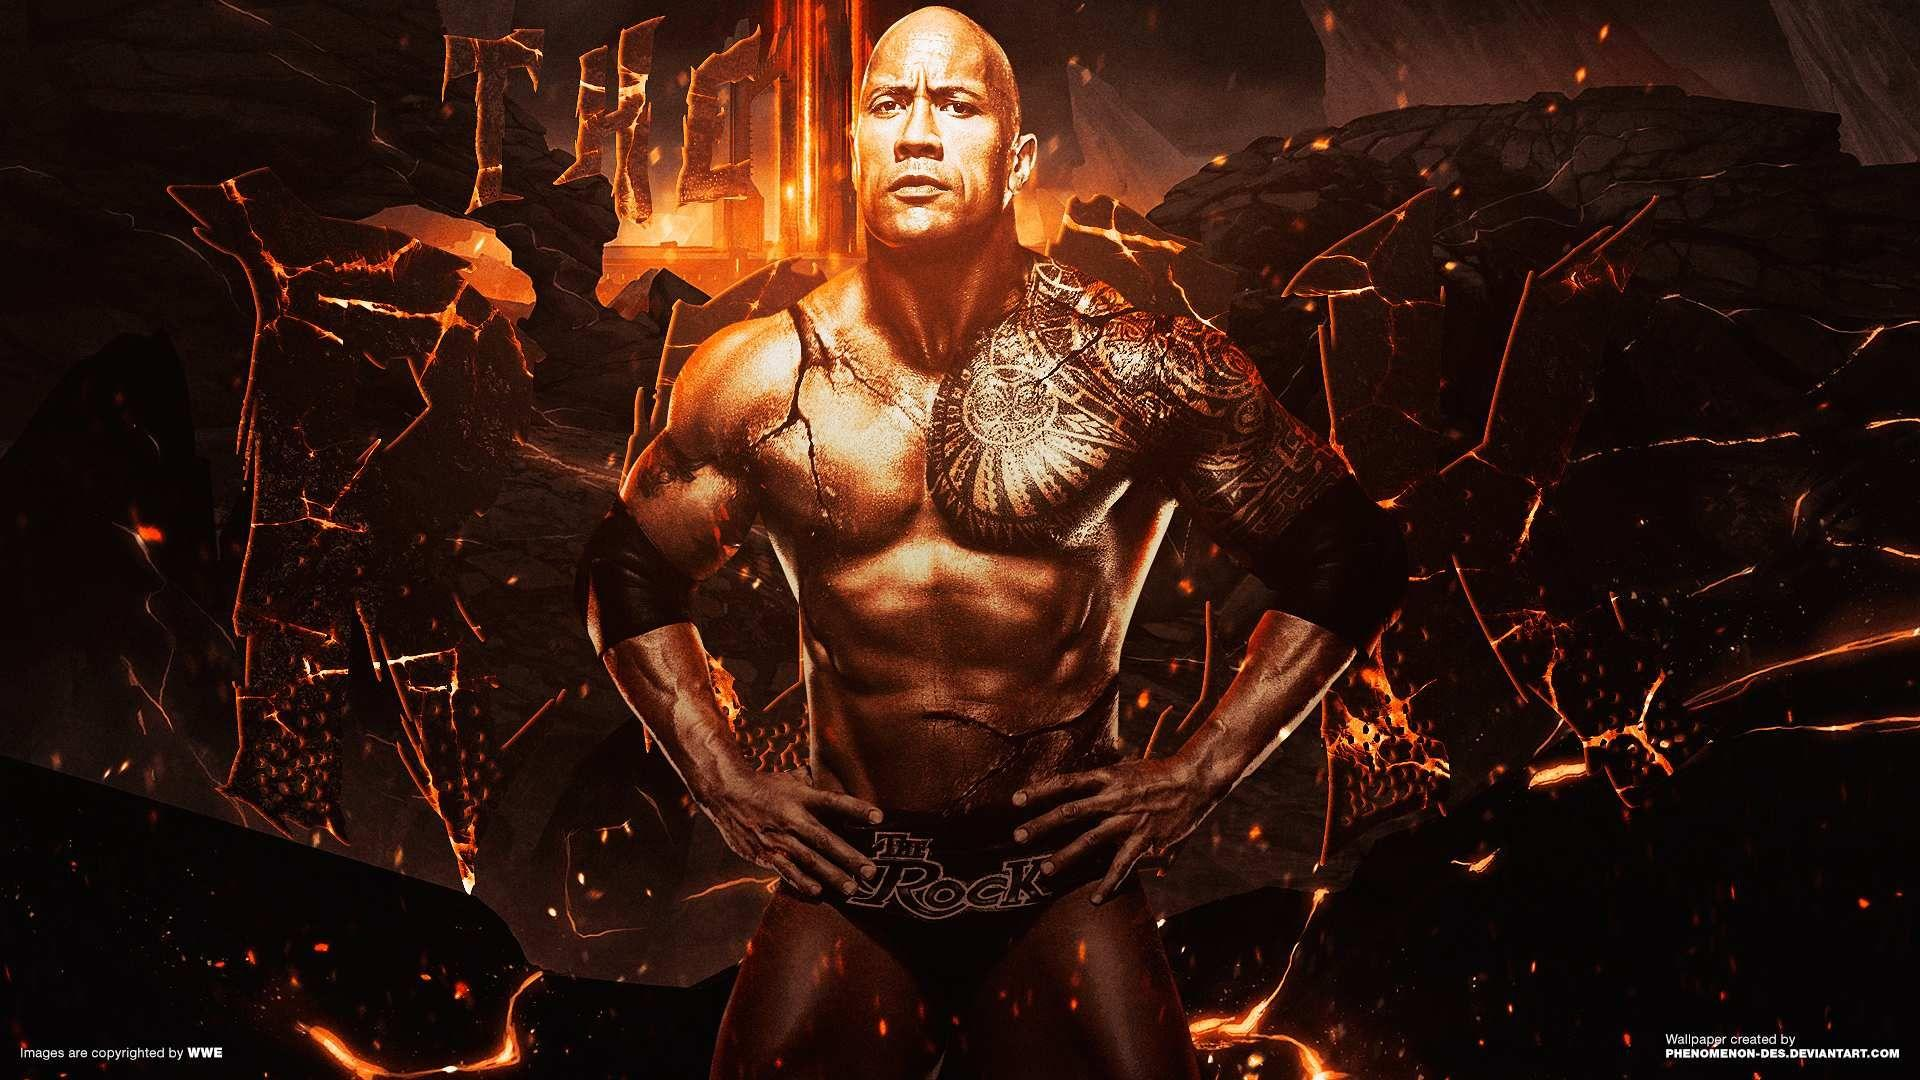 Wwe the rock wallpapers Gallery